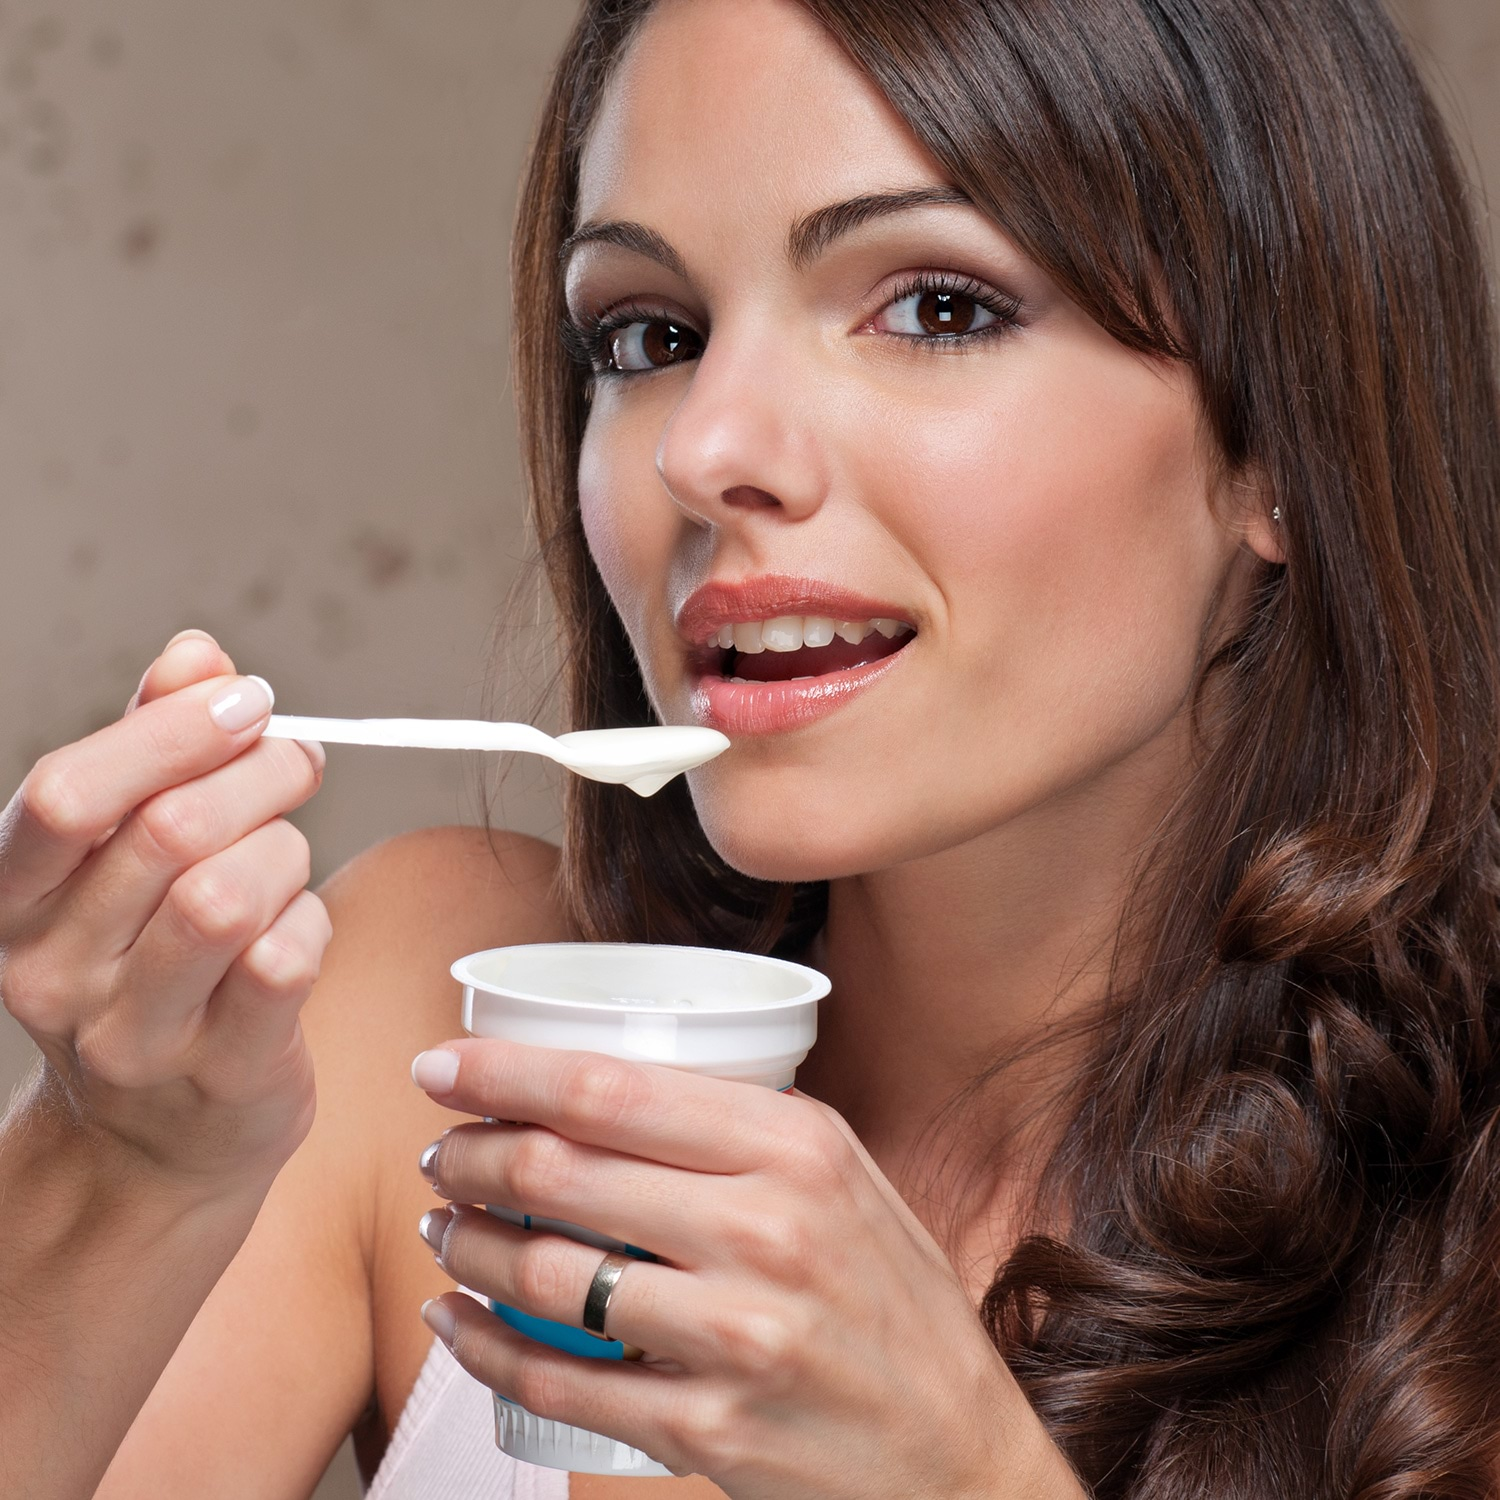 woman-eating-yogurt